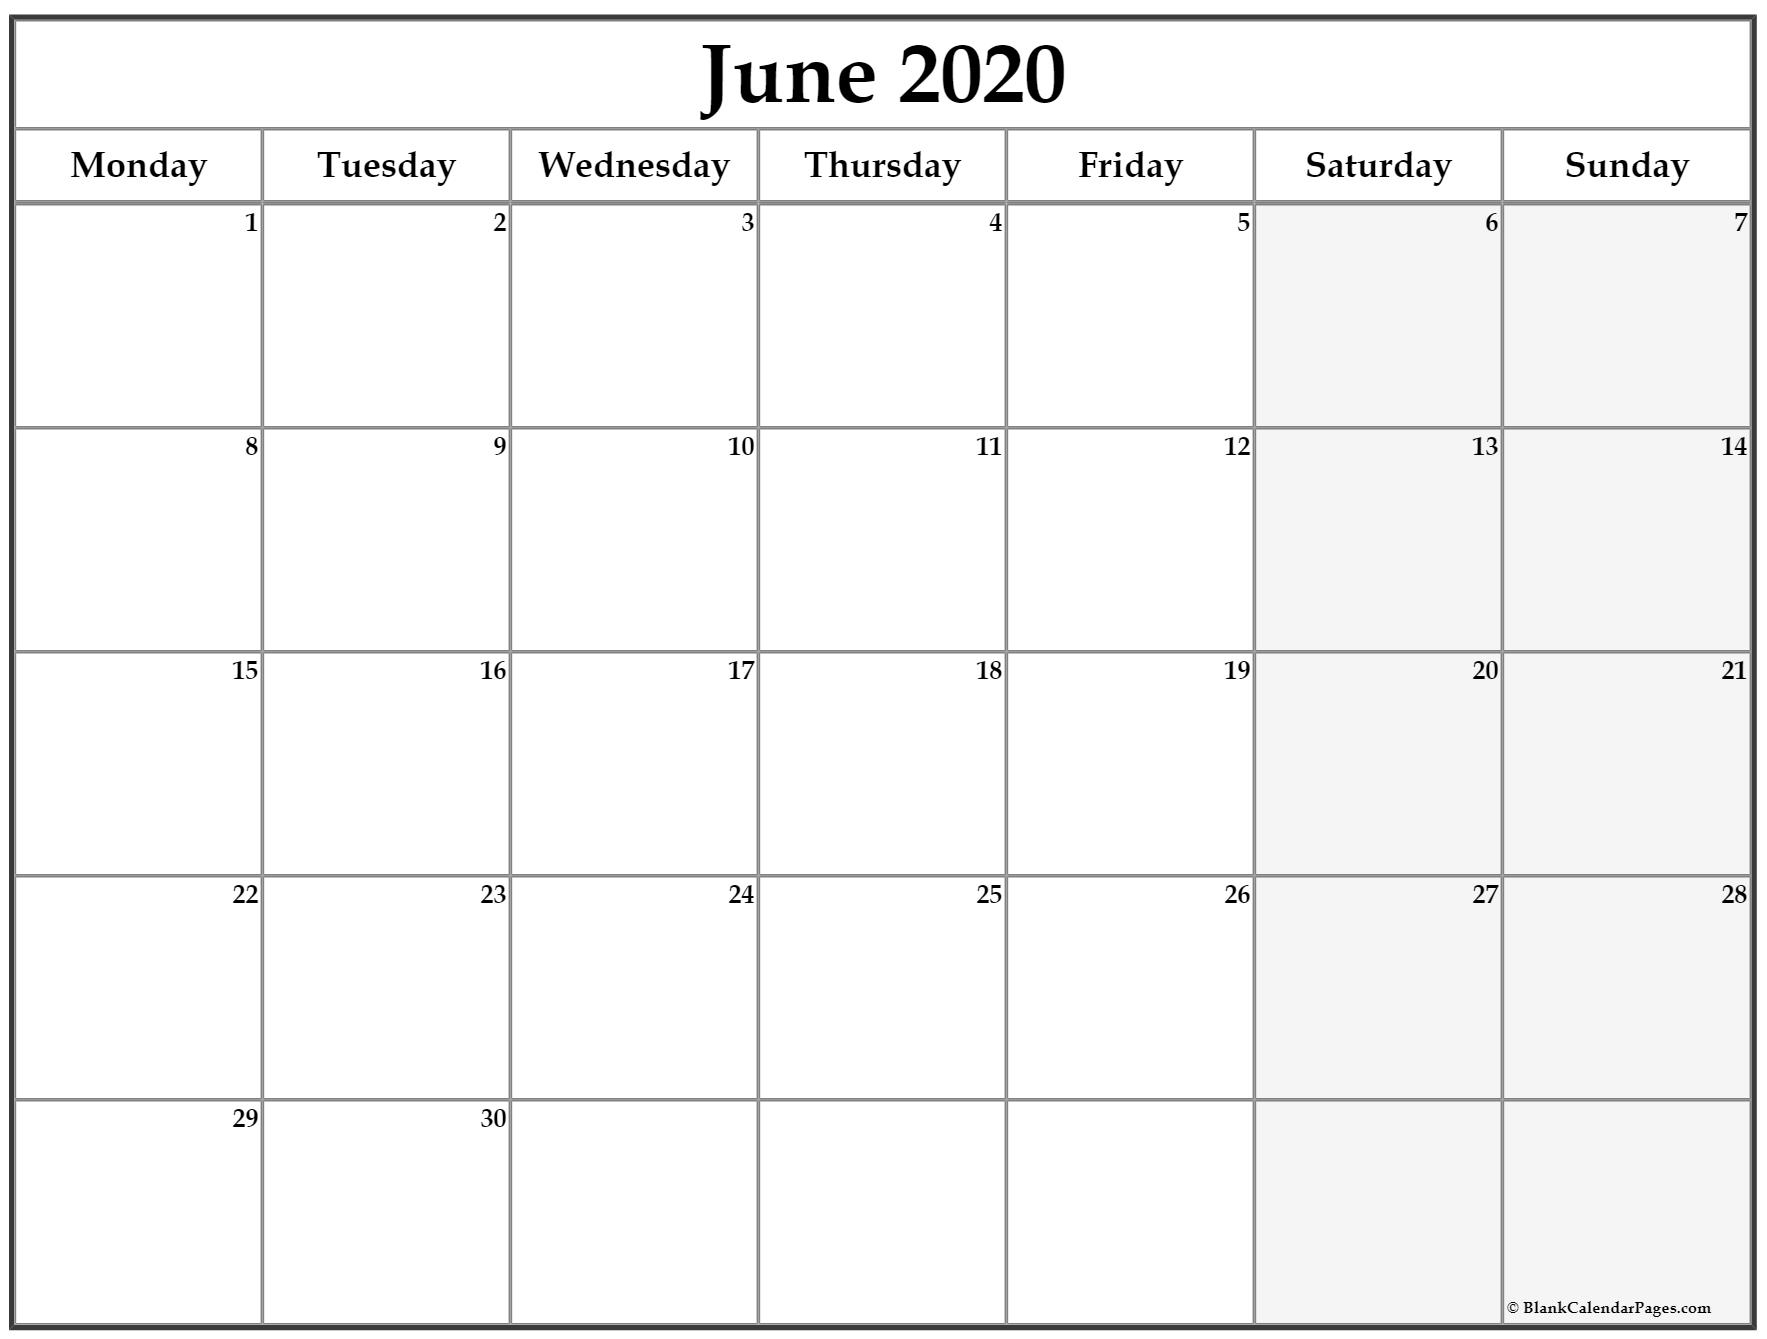 June 2020 Monday Calendar | Monday To Sunday with Calendar Sunday To Saturday 2020